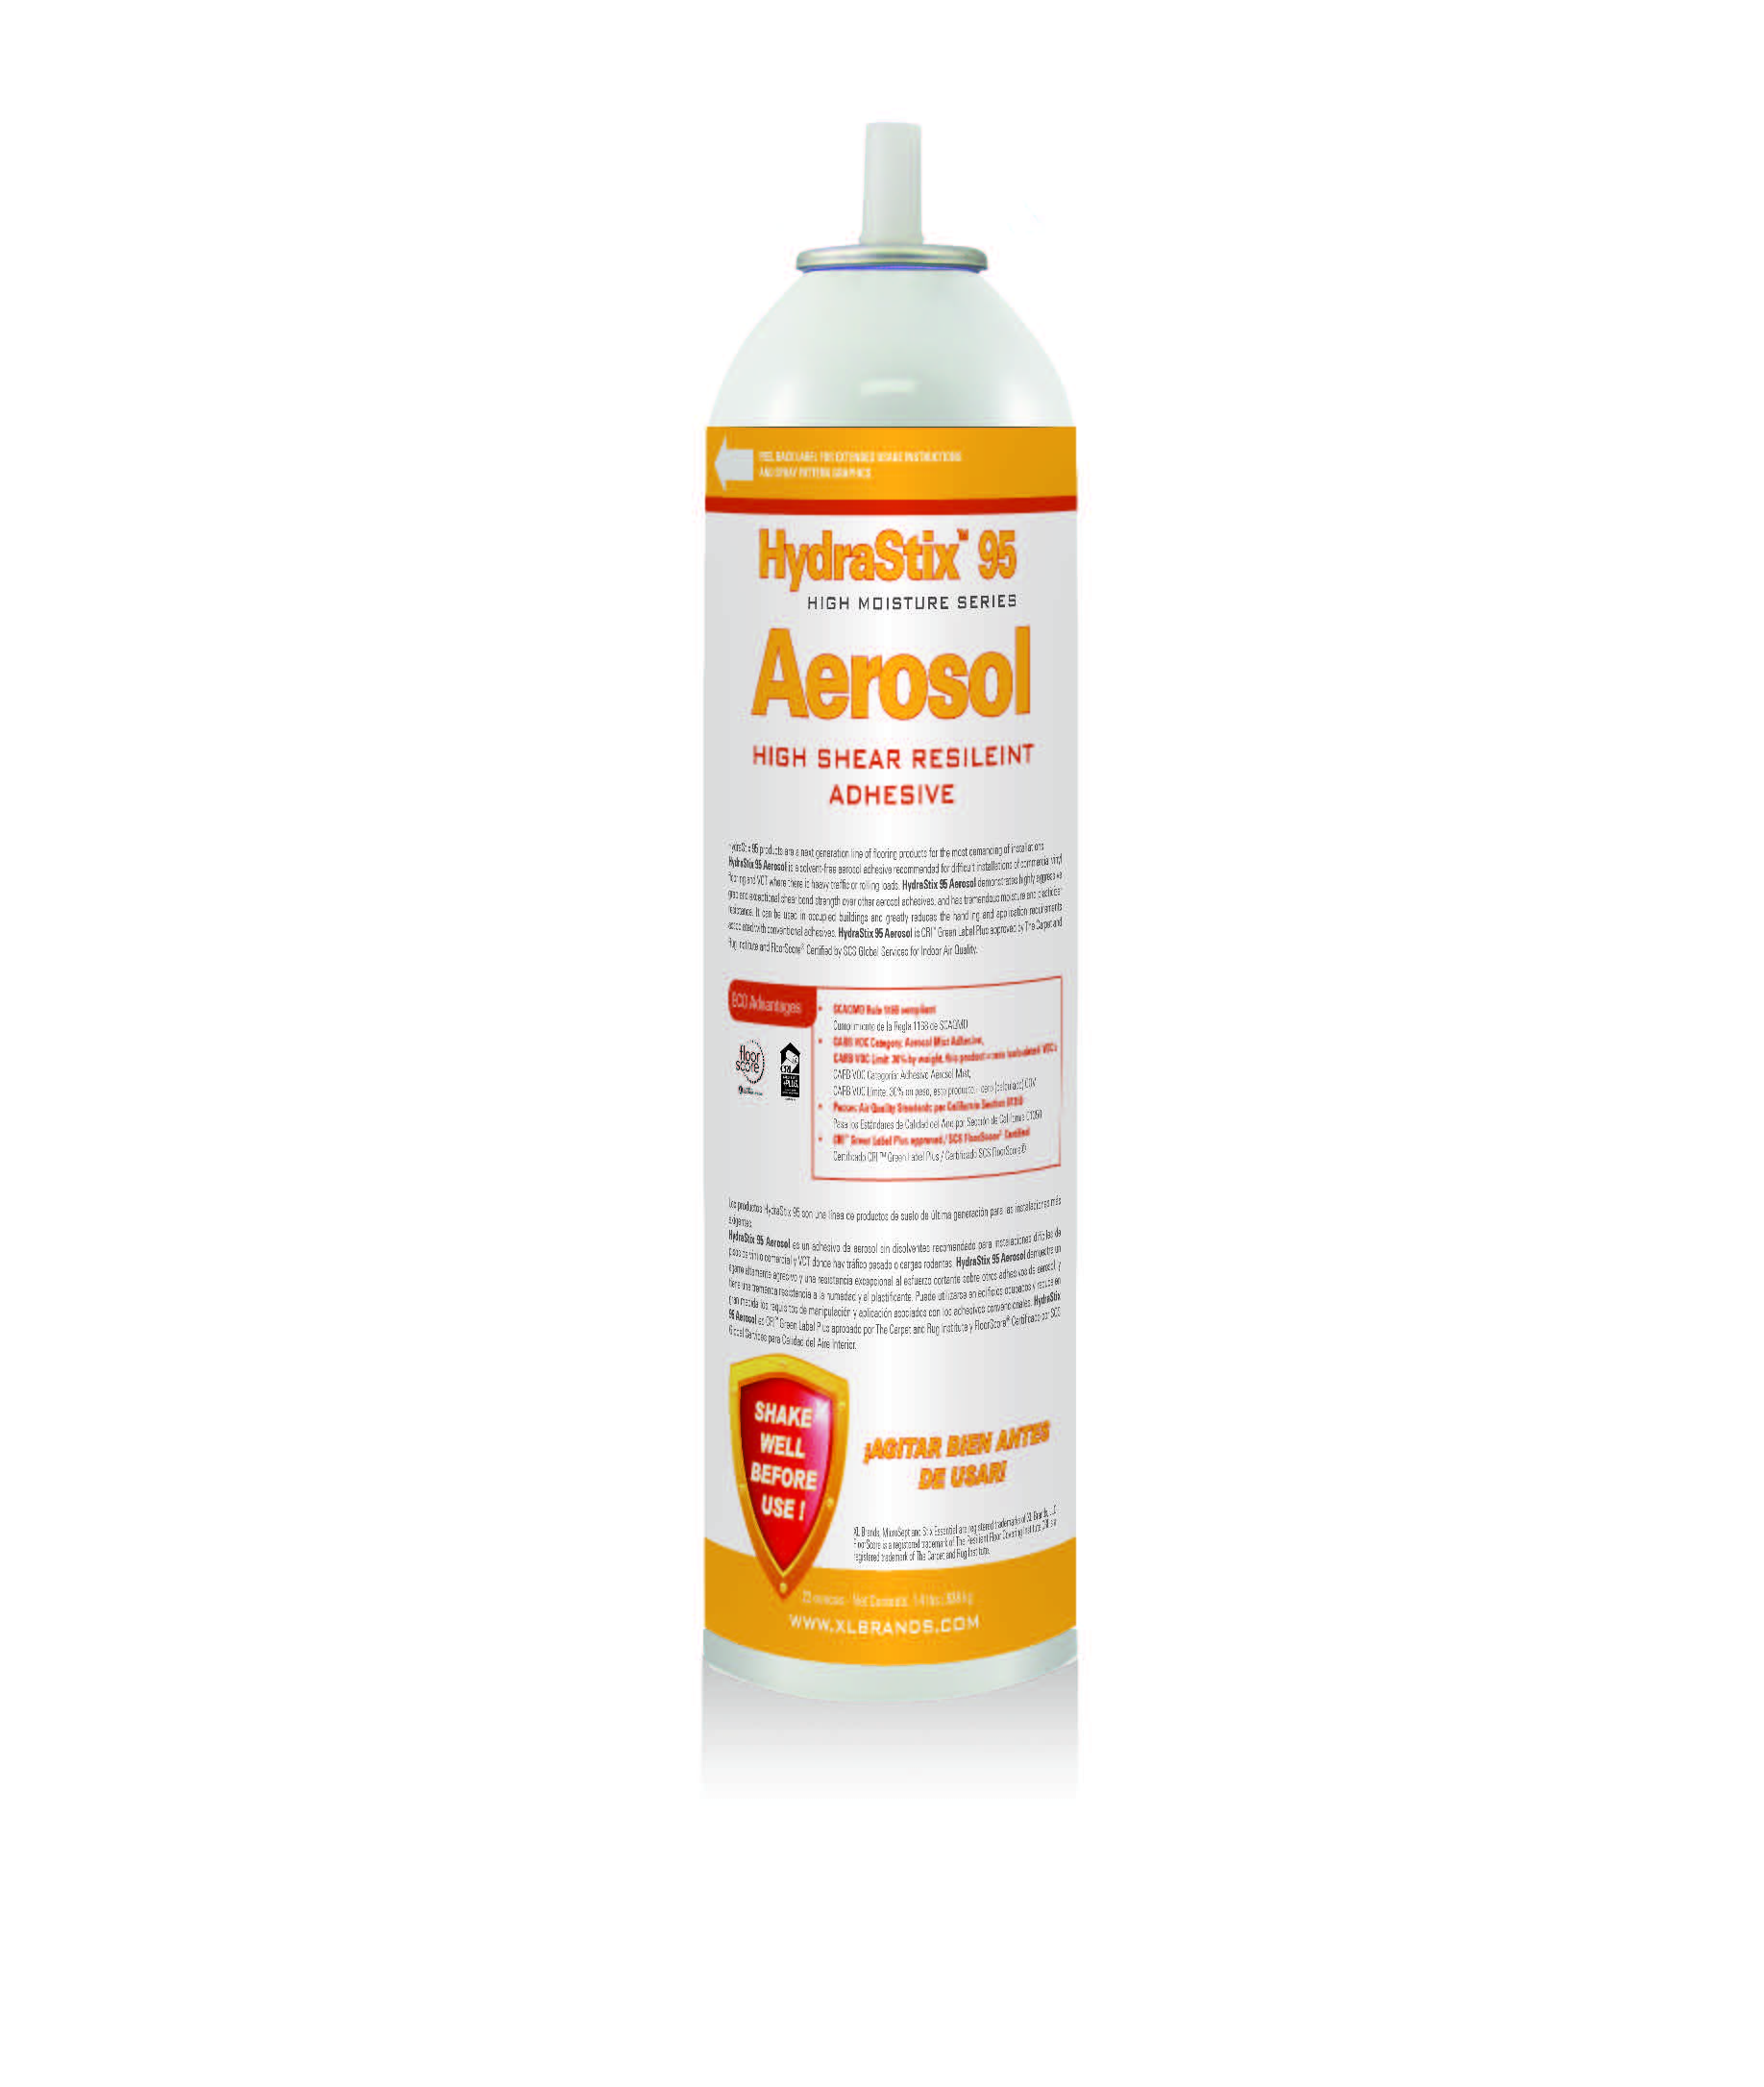 Image of Hydrastix 95 Aerosol Can